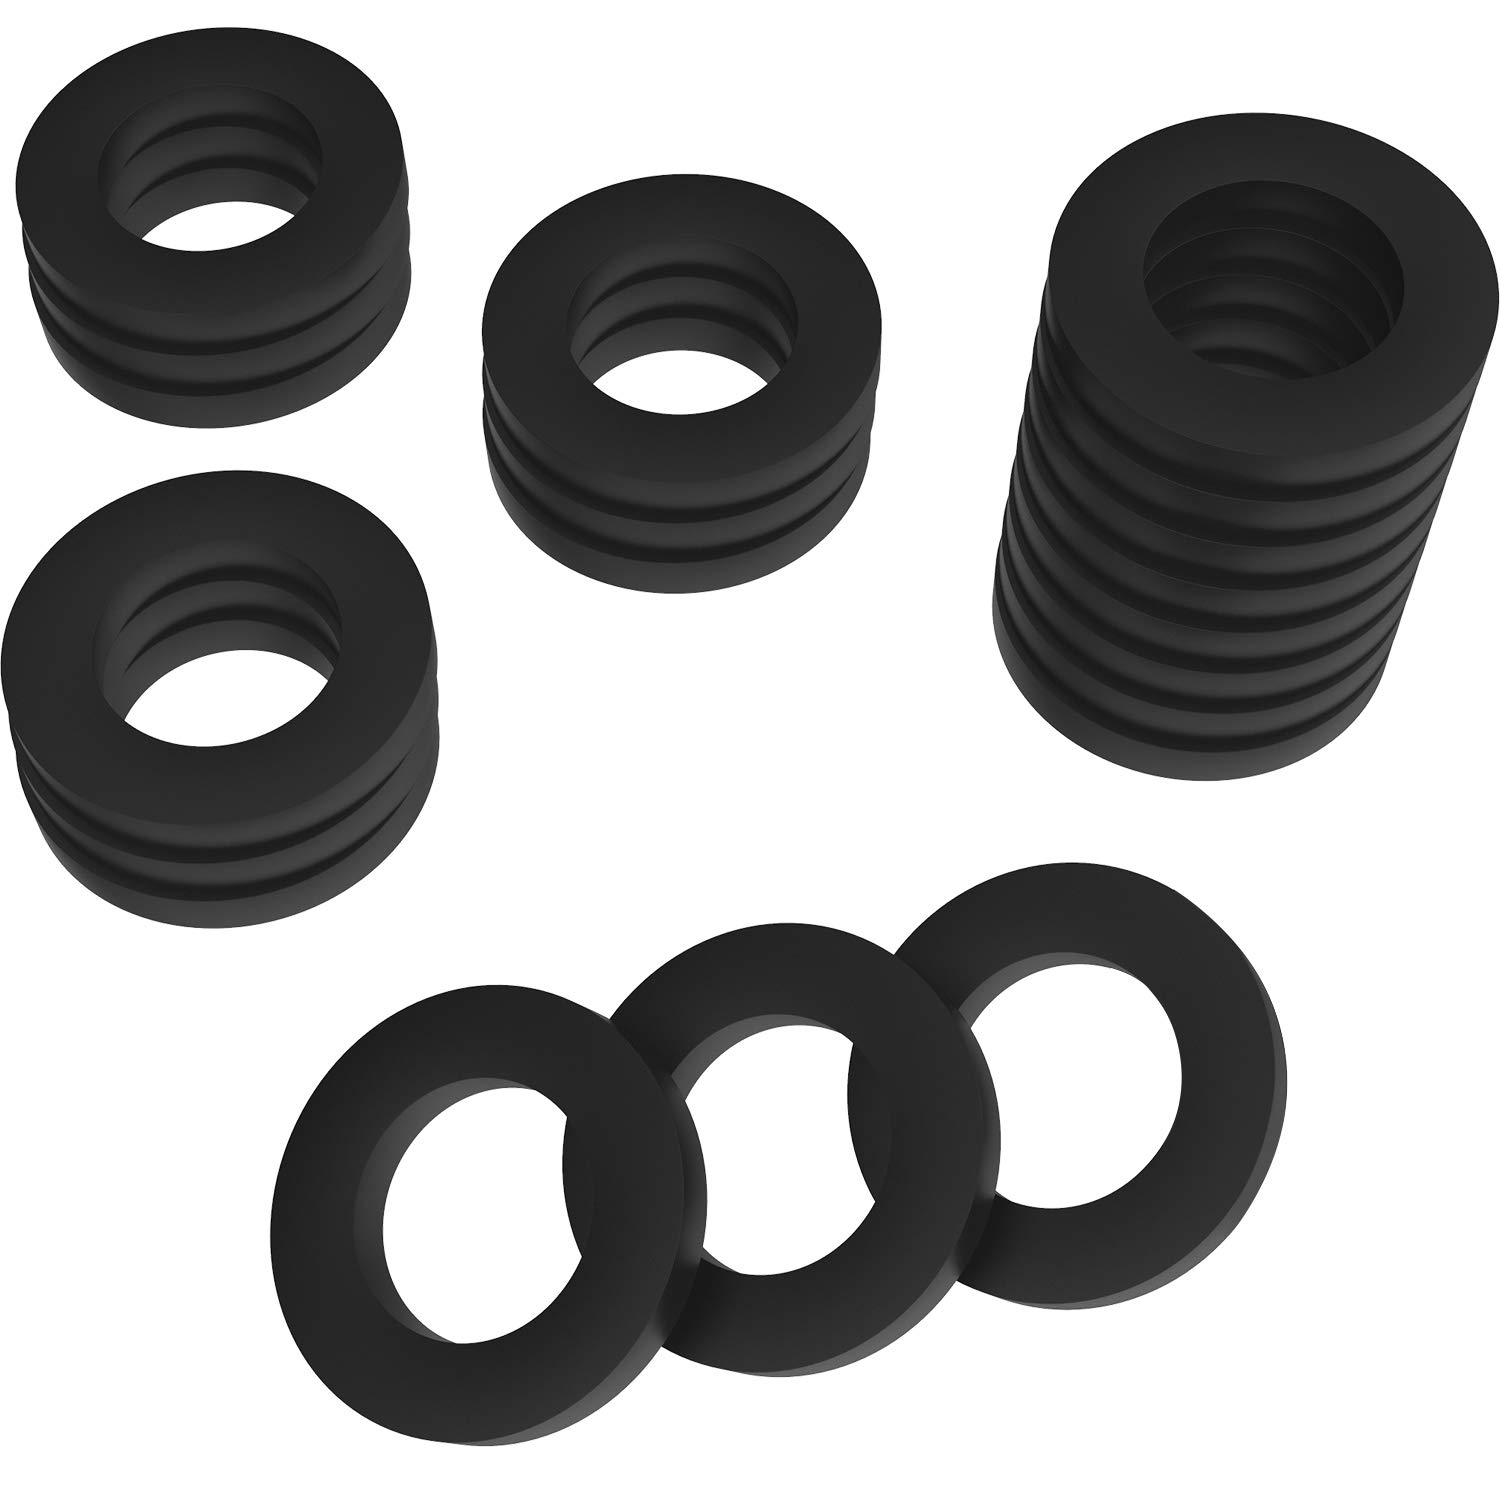 20 Pack Garden Shower Hose Washers Rubber Washers Seals for Garden Hose and Shower Hose (1 inch) Hotop